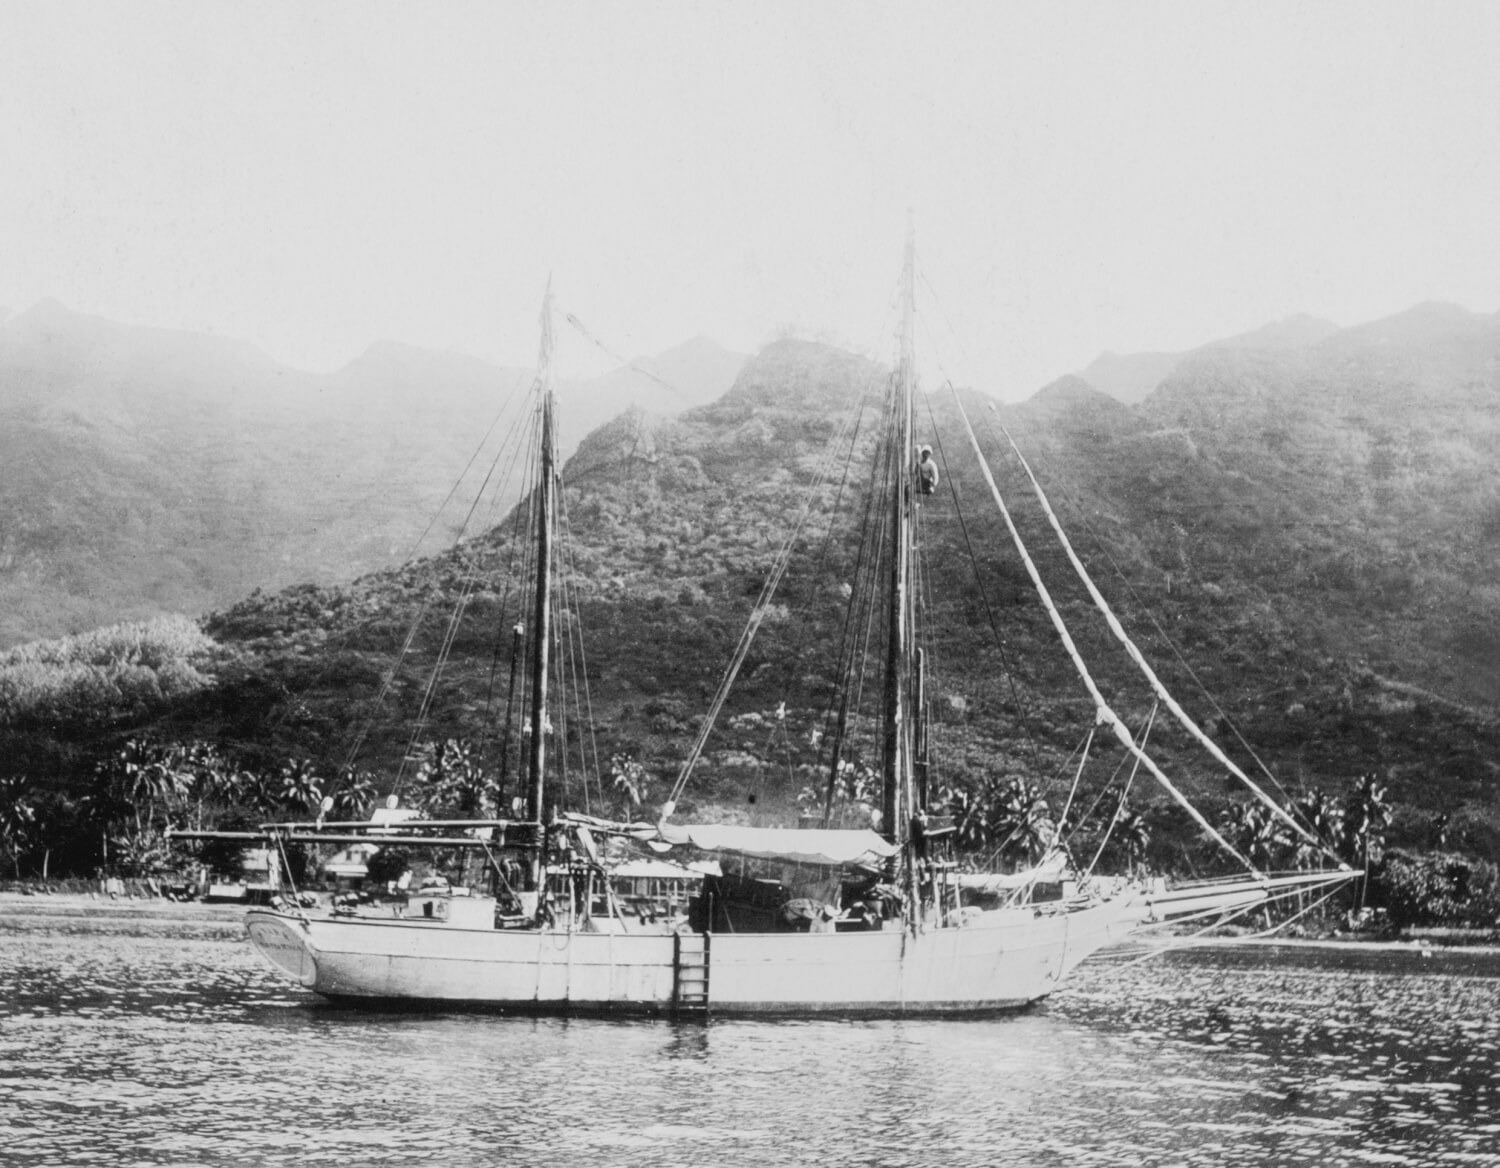 Le Snark dans la baie de Taiohae, Nuku Hiva, îles Marquises, 1907 © Courtesy of Jack London Papers, The Huntington Library, San Marino, California